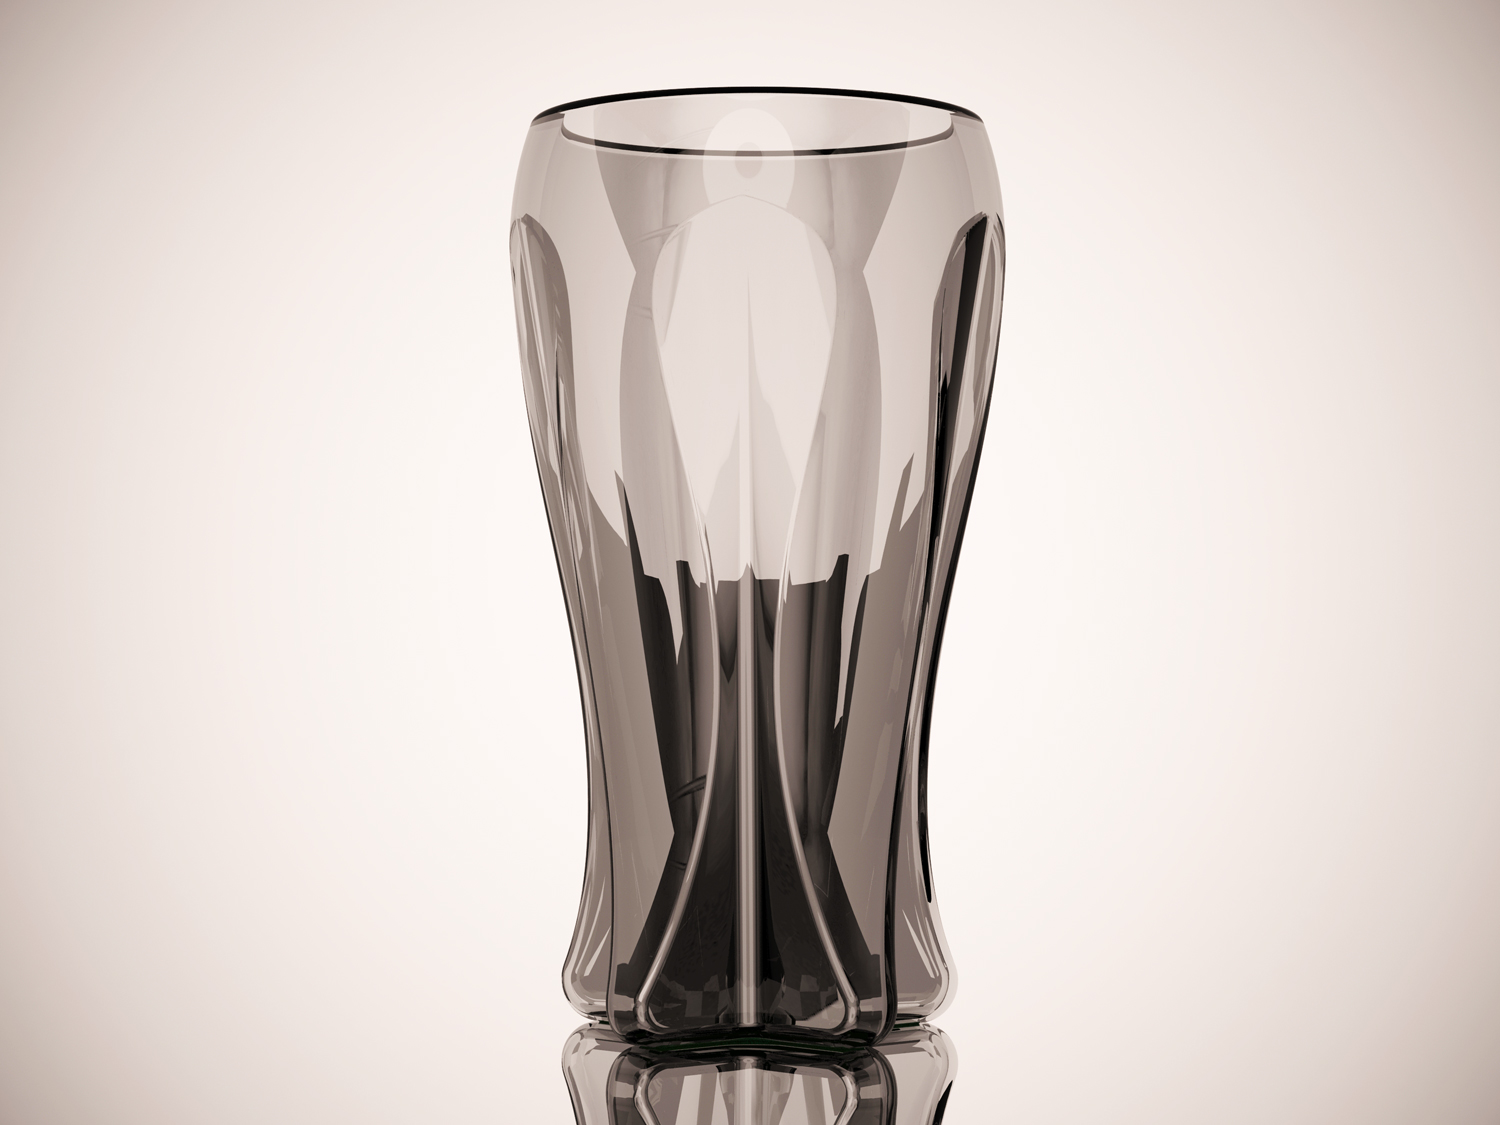 A black and white shot of one glass emphasizes the facets of its star-shaped grip-enhancing design.